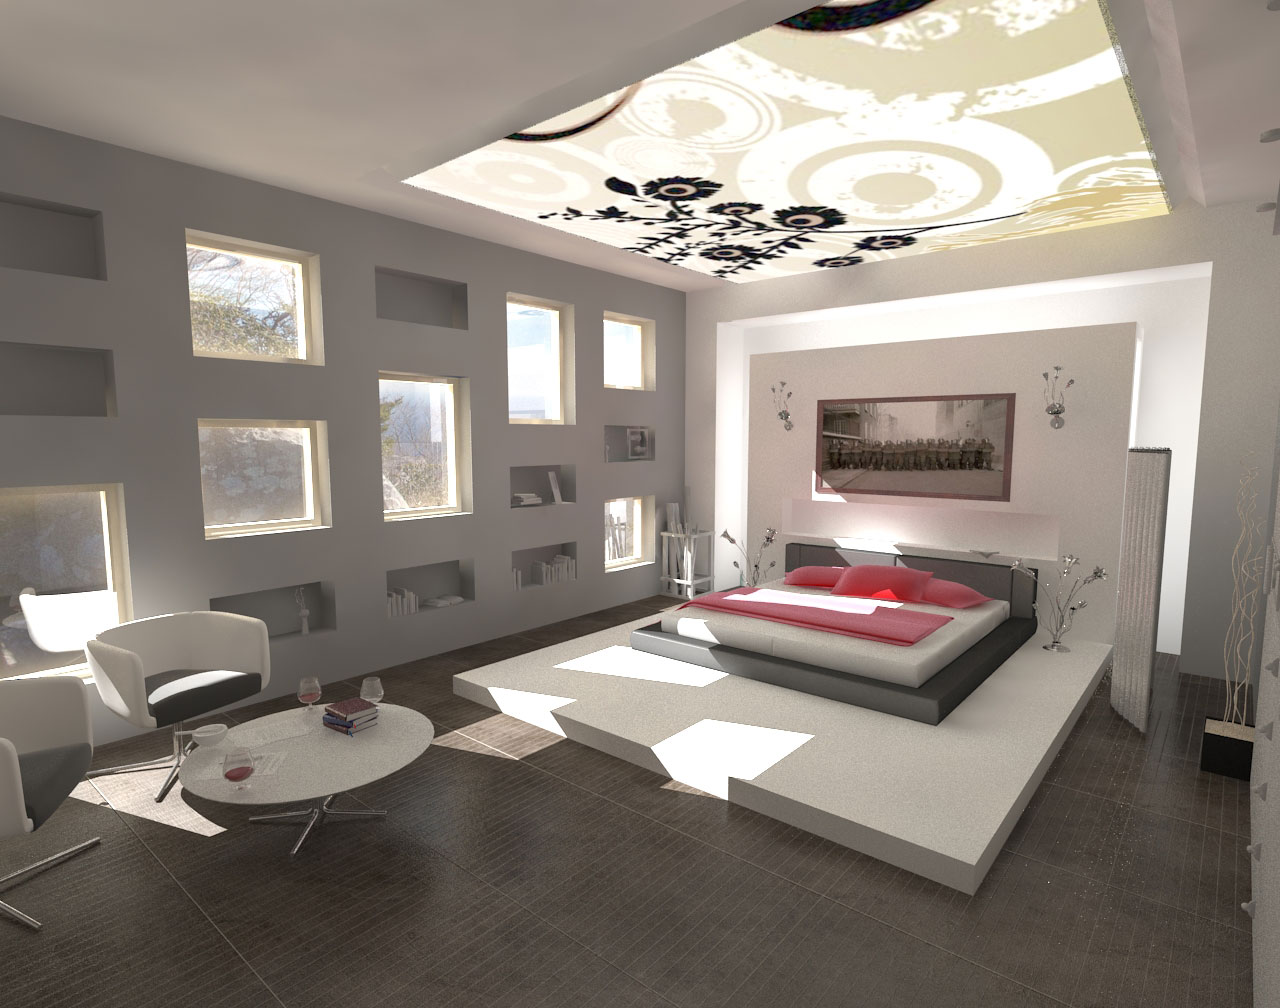 Decorations minimalist design modern bedroom interior for Modern house interior design bedroom